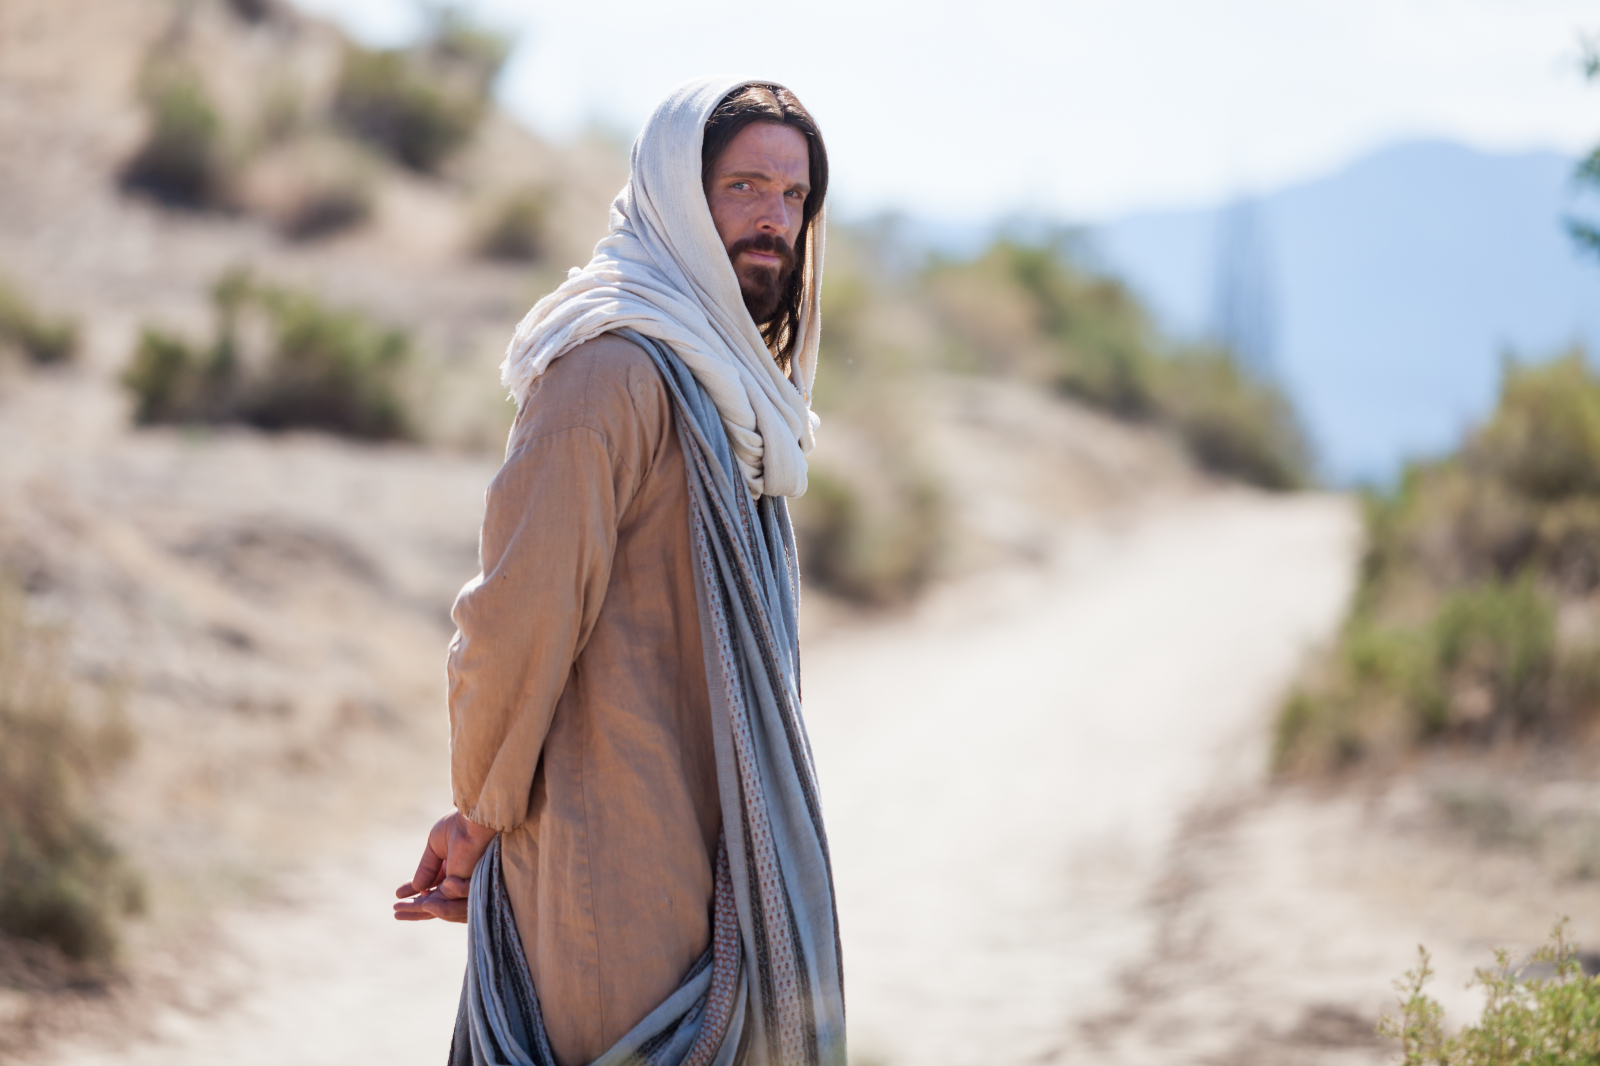 A scene from the Church's Bible videos depicts the Savior.